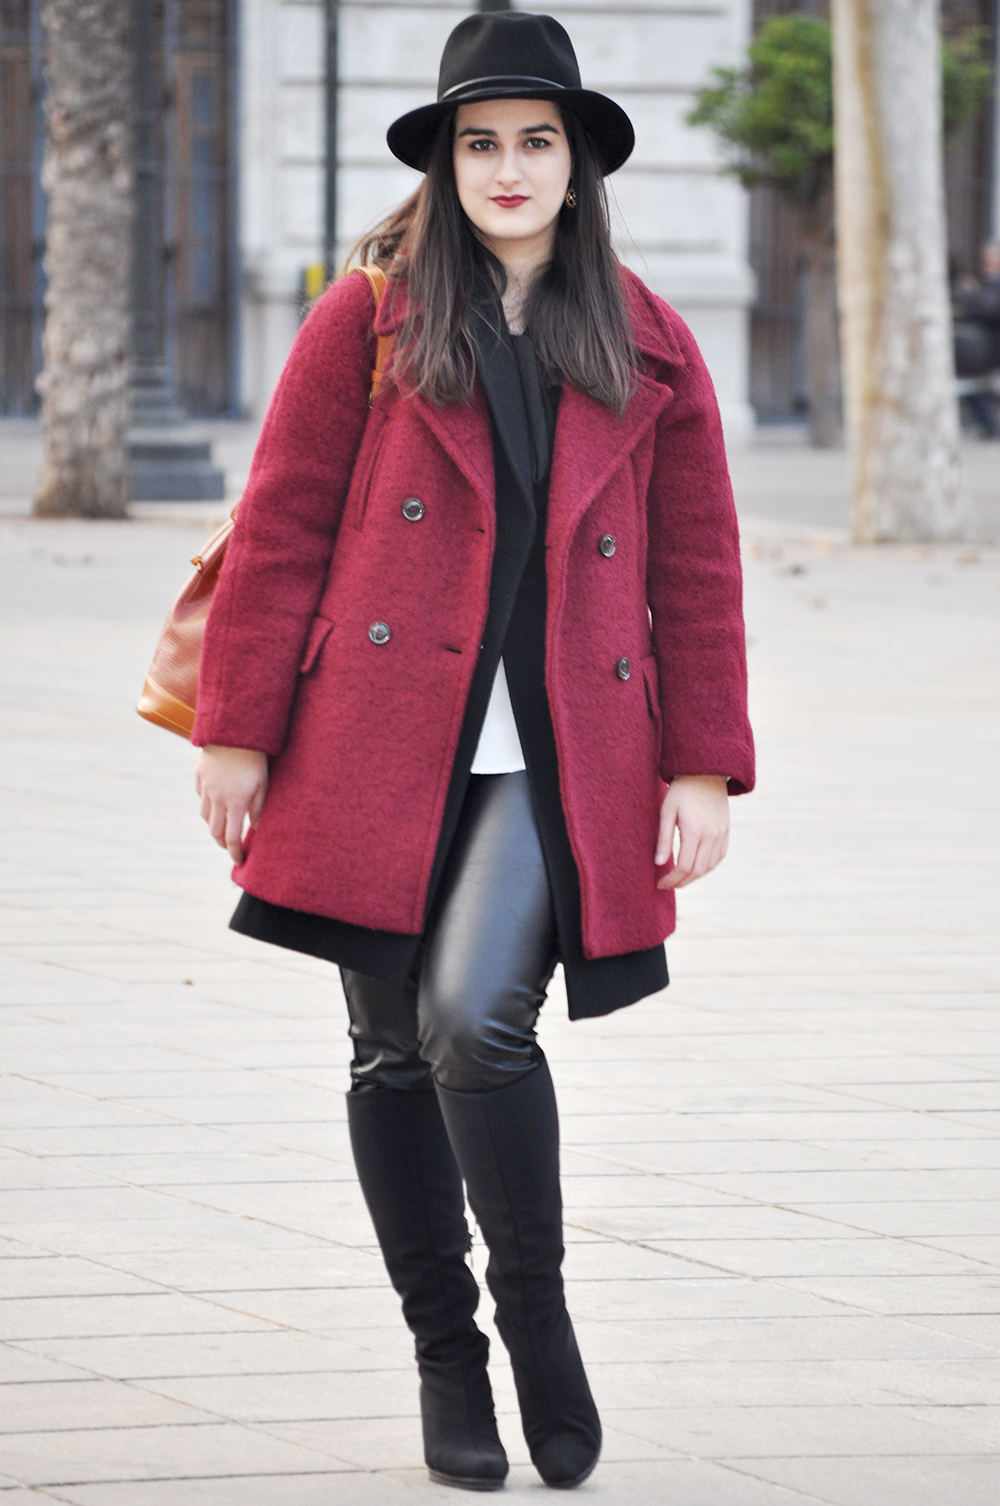 valencia fashion blogger spain somethingfashion fedora hat streetstyle winter boots LV bucket bag coat_0075 copia